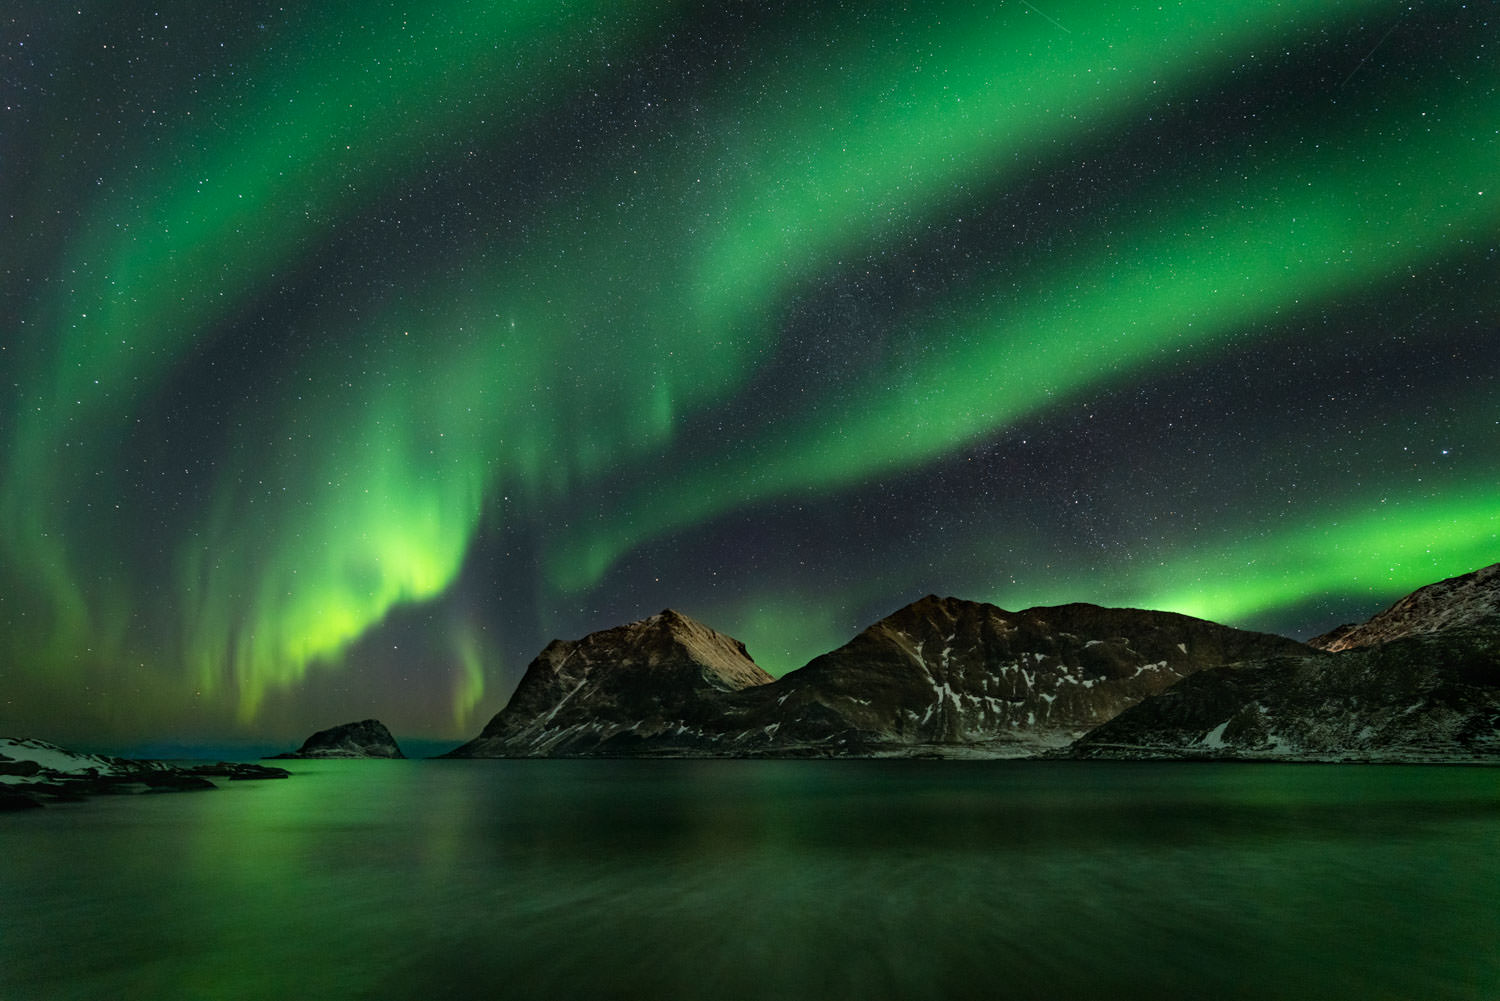 Milky Way and Northern Lights at Haukland Beach in Norway